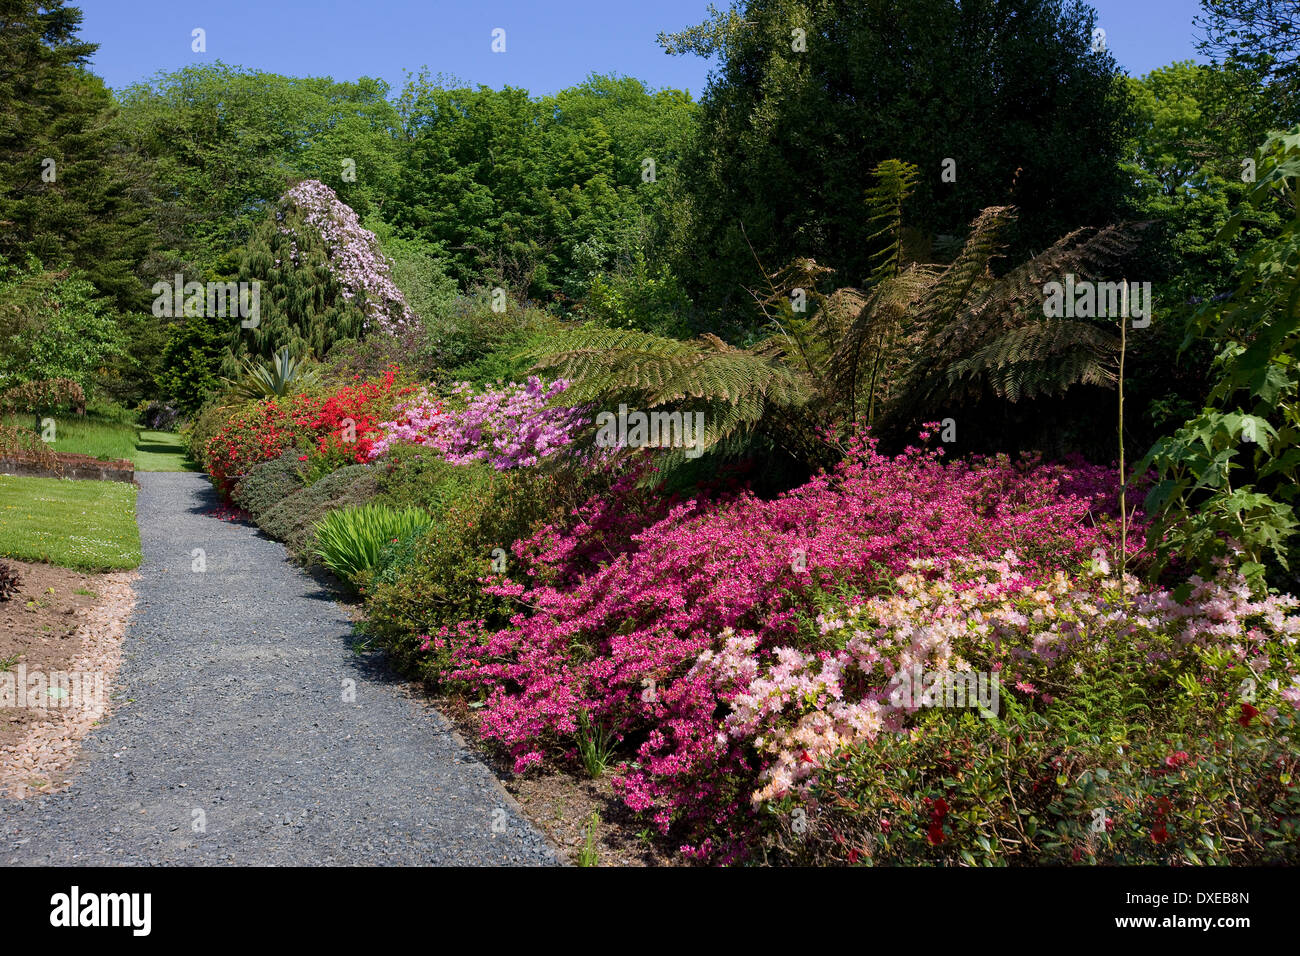 The beautiful gardens at Achamore, Isle of Gigha, Argyll - Stock Image